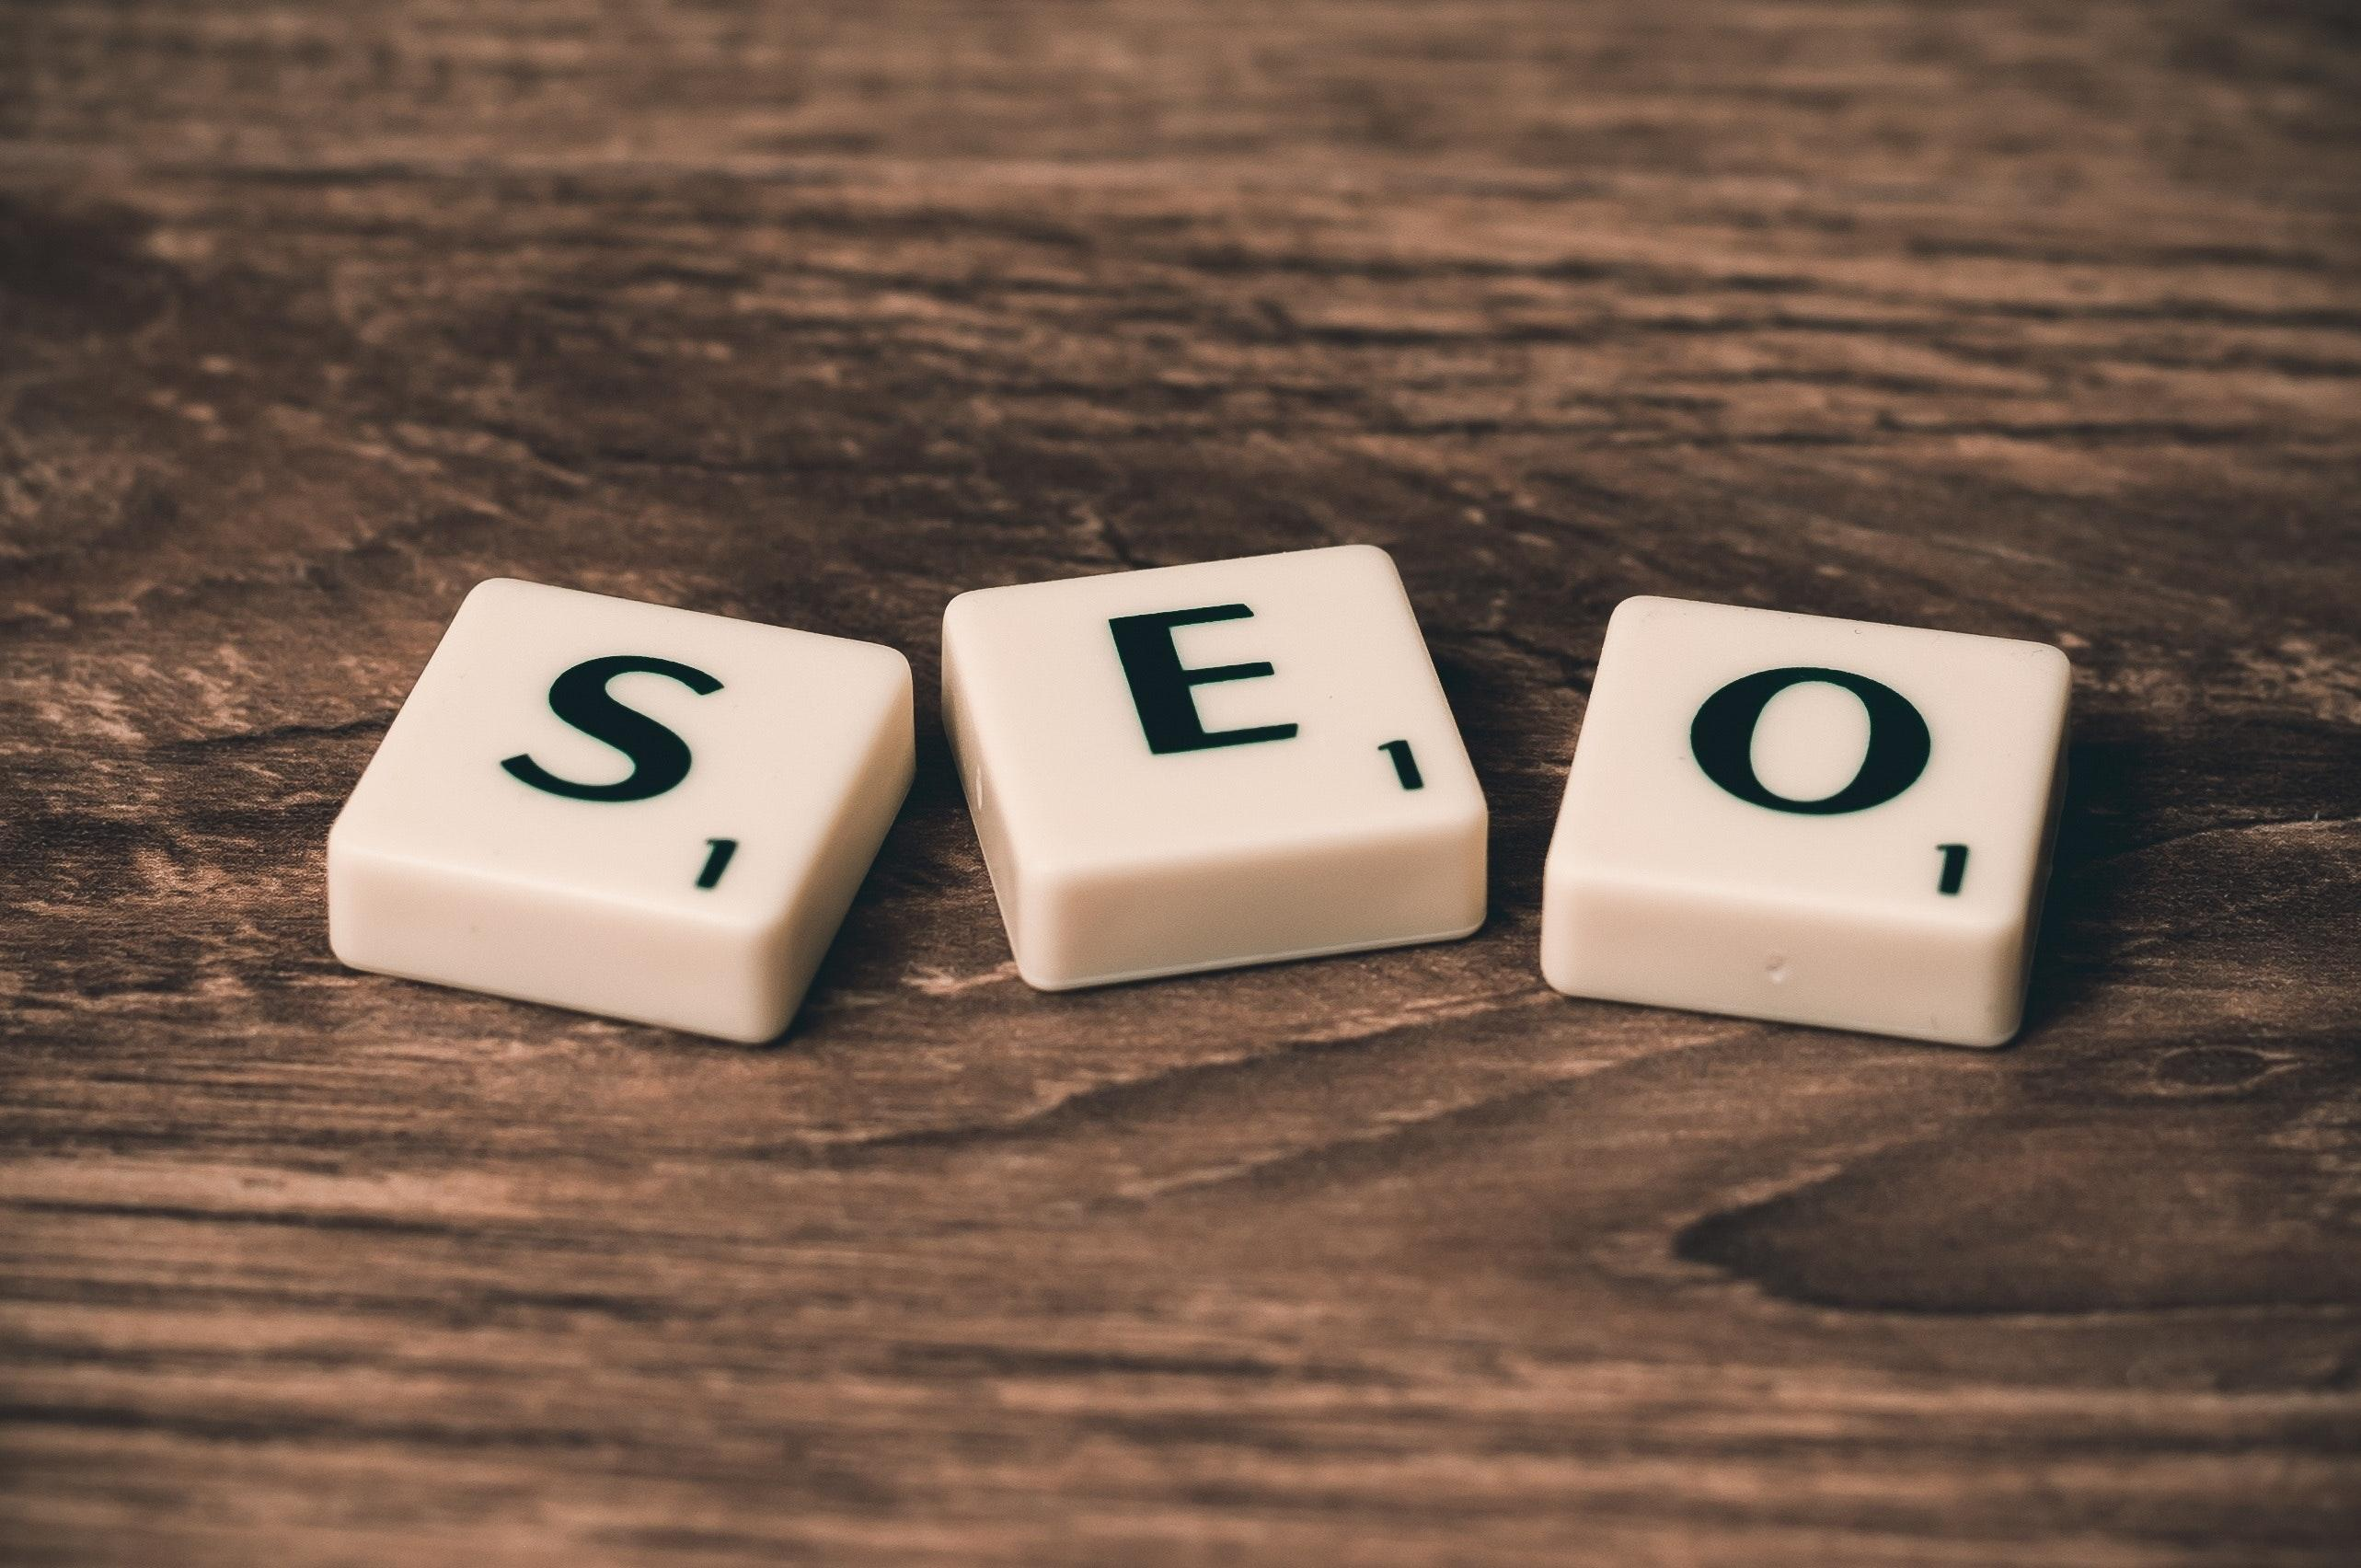 3 1-point Scrabble pieces that spell out SEO on a brown surface - SEO for photographers